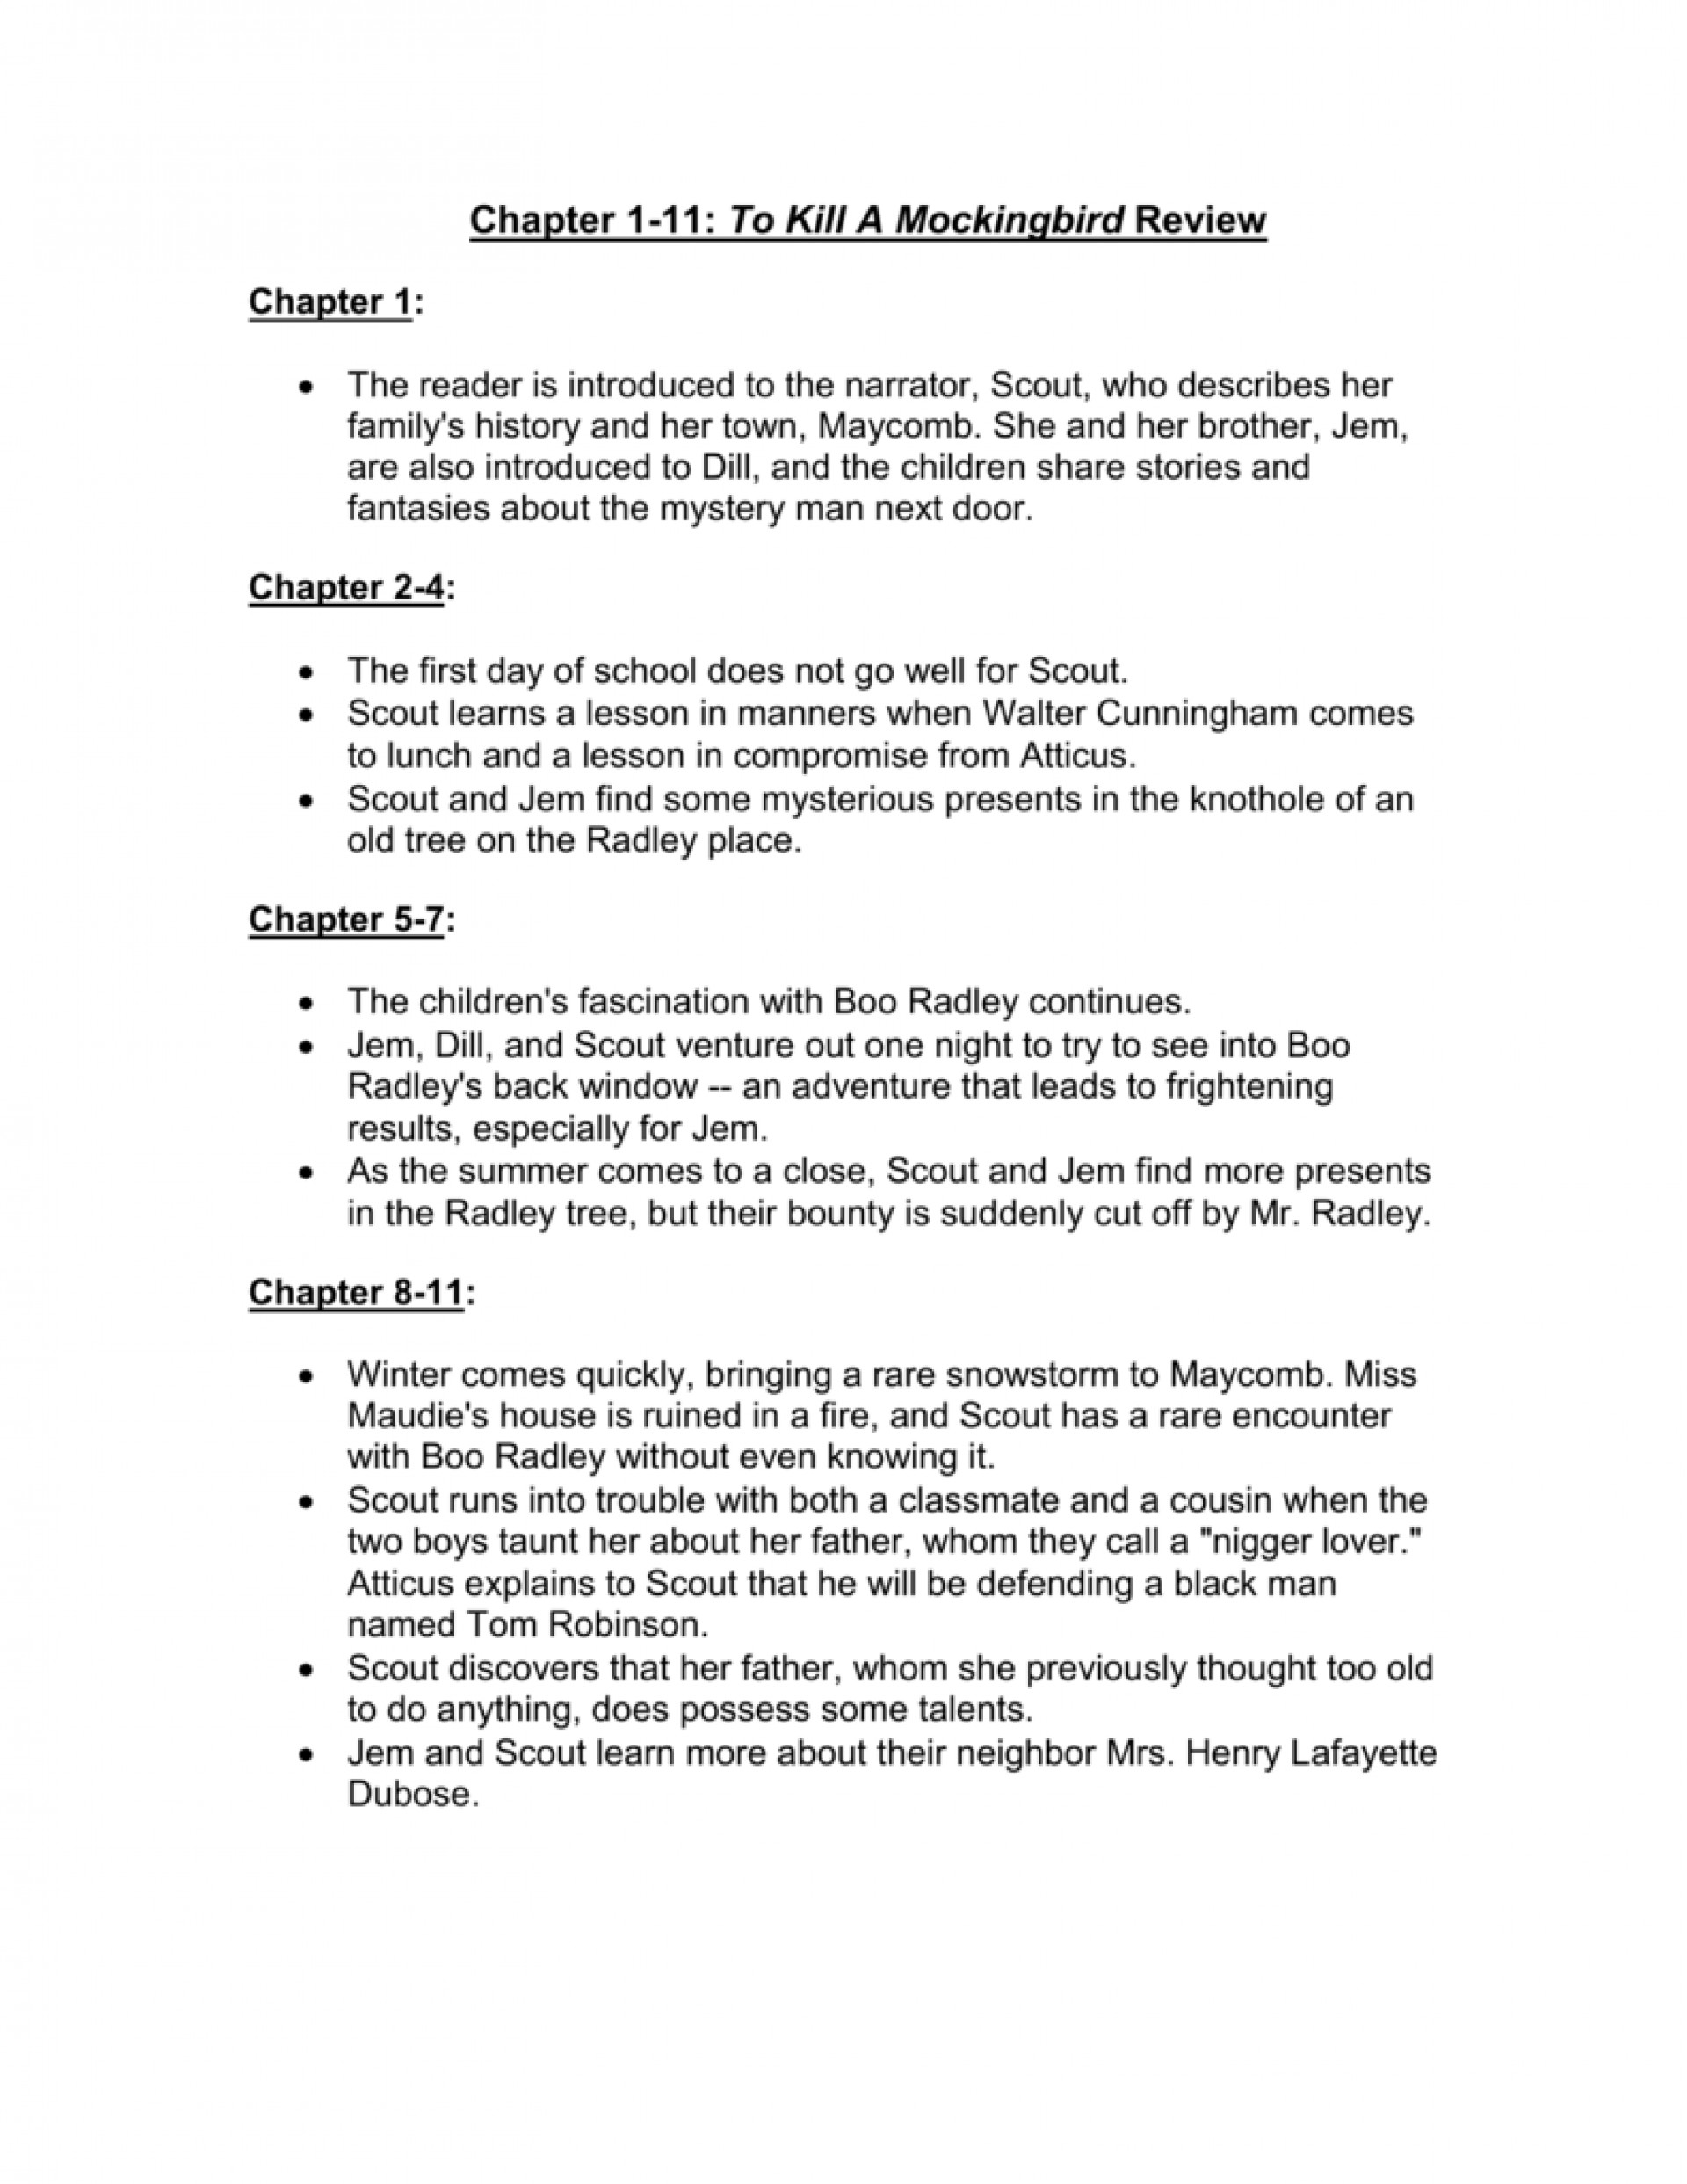 008 005916667 Essay Example Questions For To Kill Mockingbird Part Impressive A 1 Discussion Chapter 16 14 15 1920